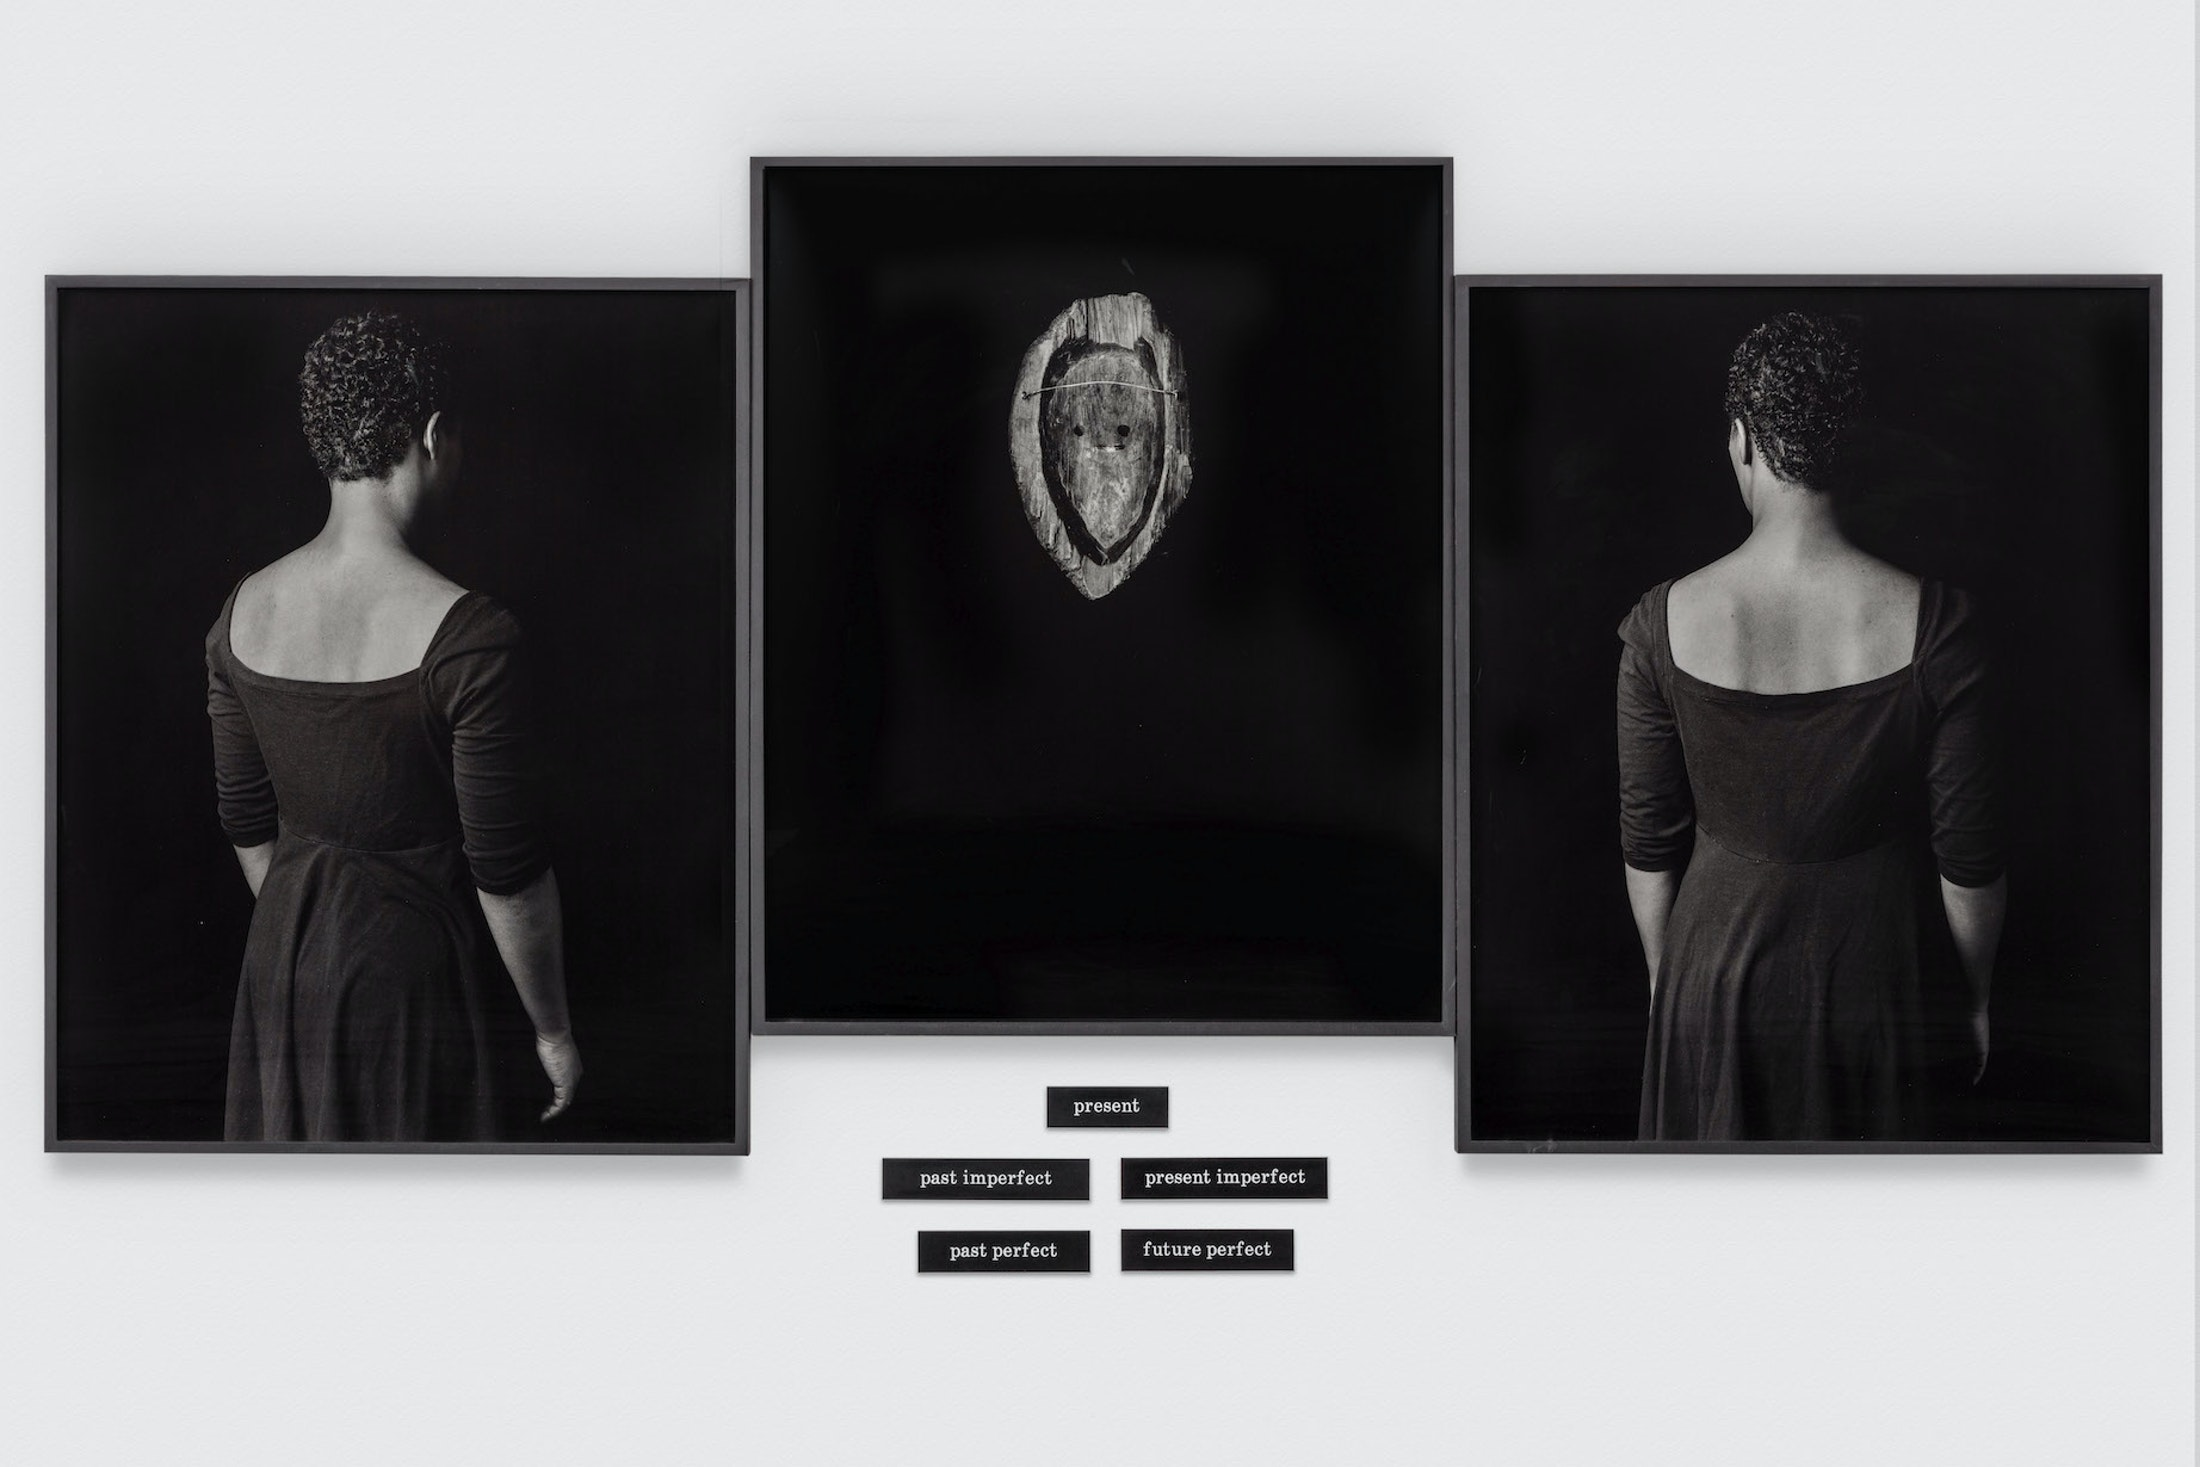 Lorna Simpson, Tense, 1991. 3 silver gelatin prints, 3 frames total (1 print in each) 5 engraved plastic plaques. 49 ¼ x 128 ½ x 1 7/8 in. © Lorna Simpson. Courtesy of the artist and Hauser & Wirth. The Eileen Harris Norton Collection. Photo: Charles White.